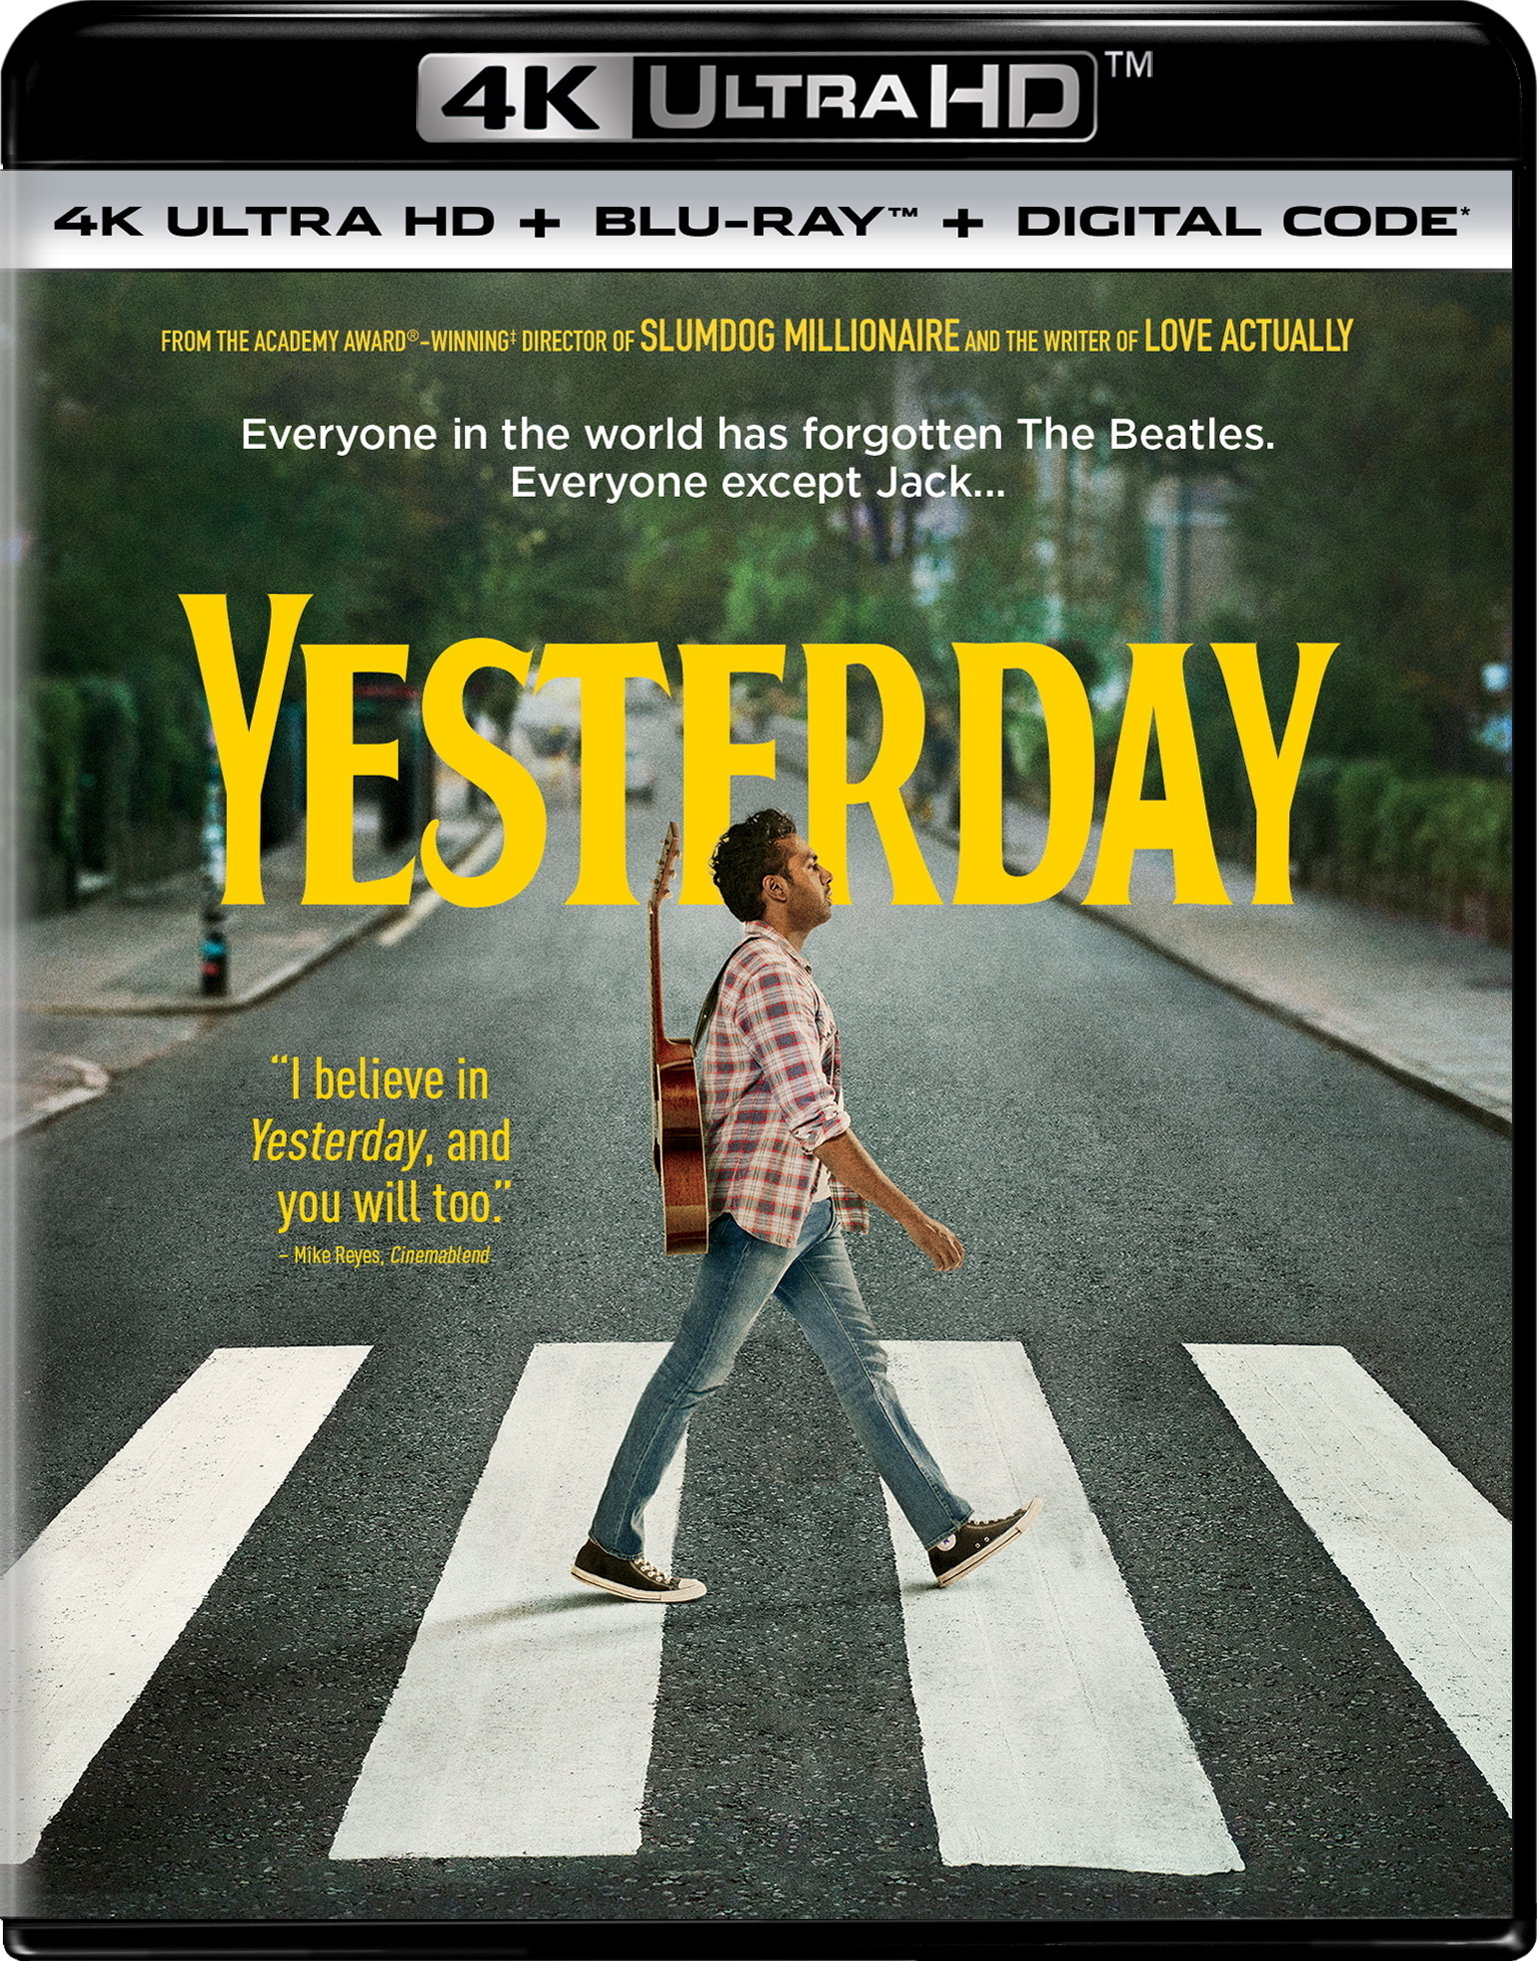 Yesterday (2019) poster image